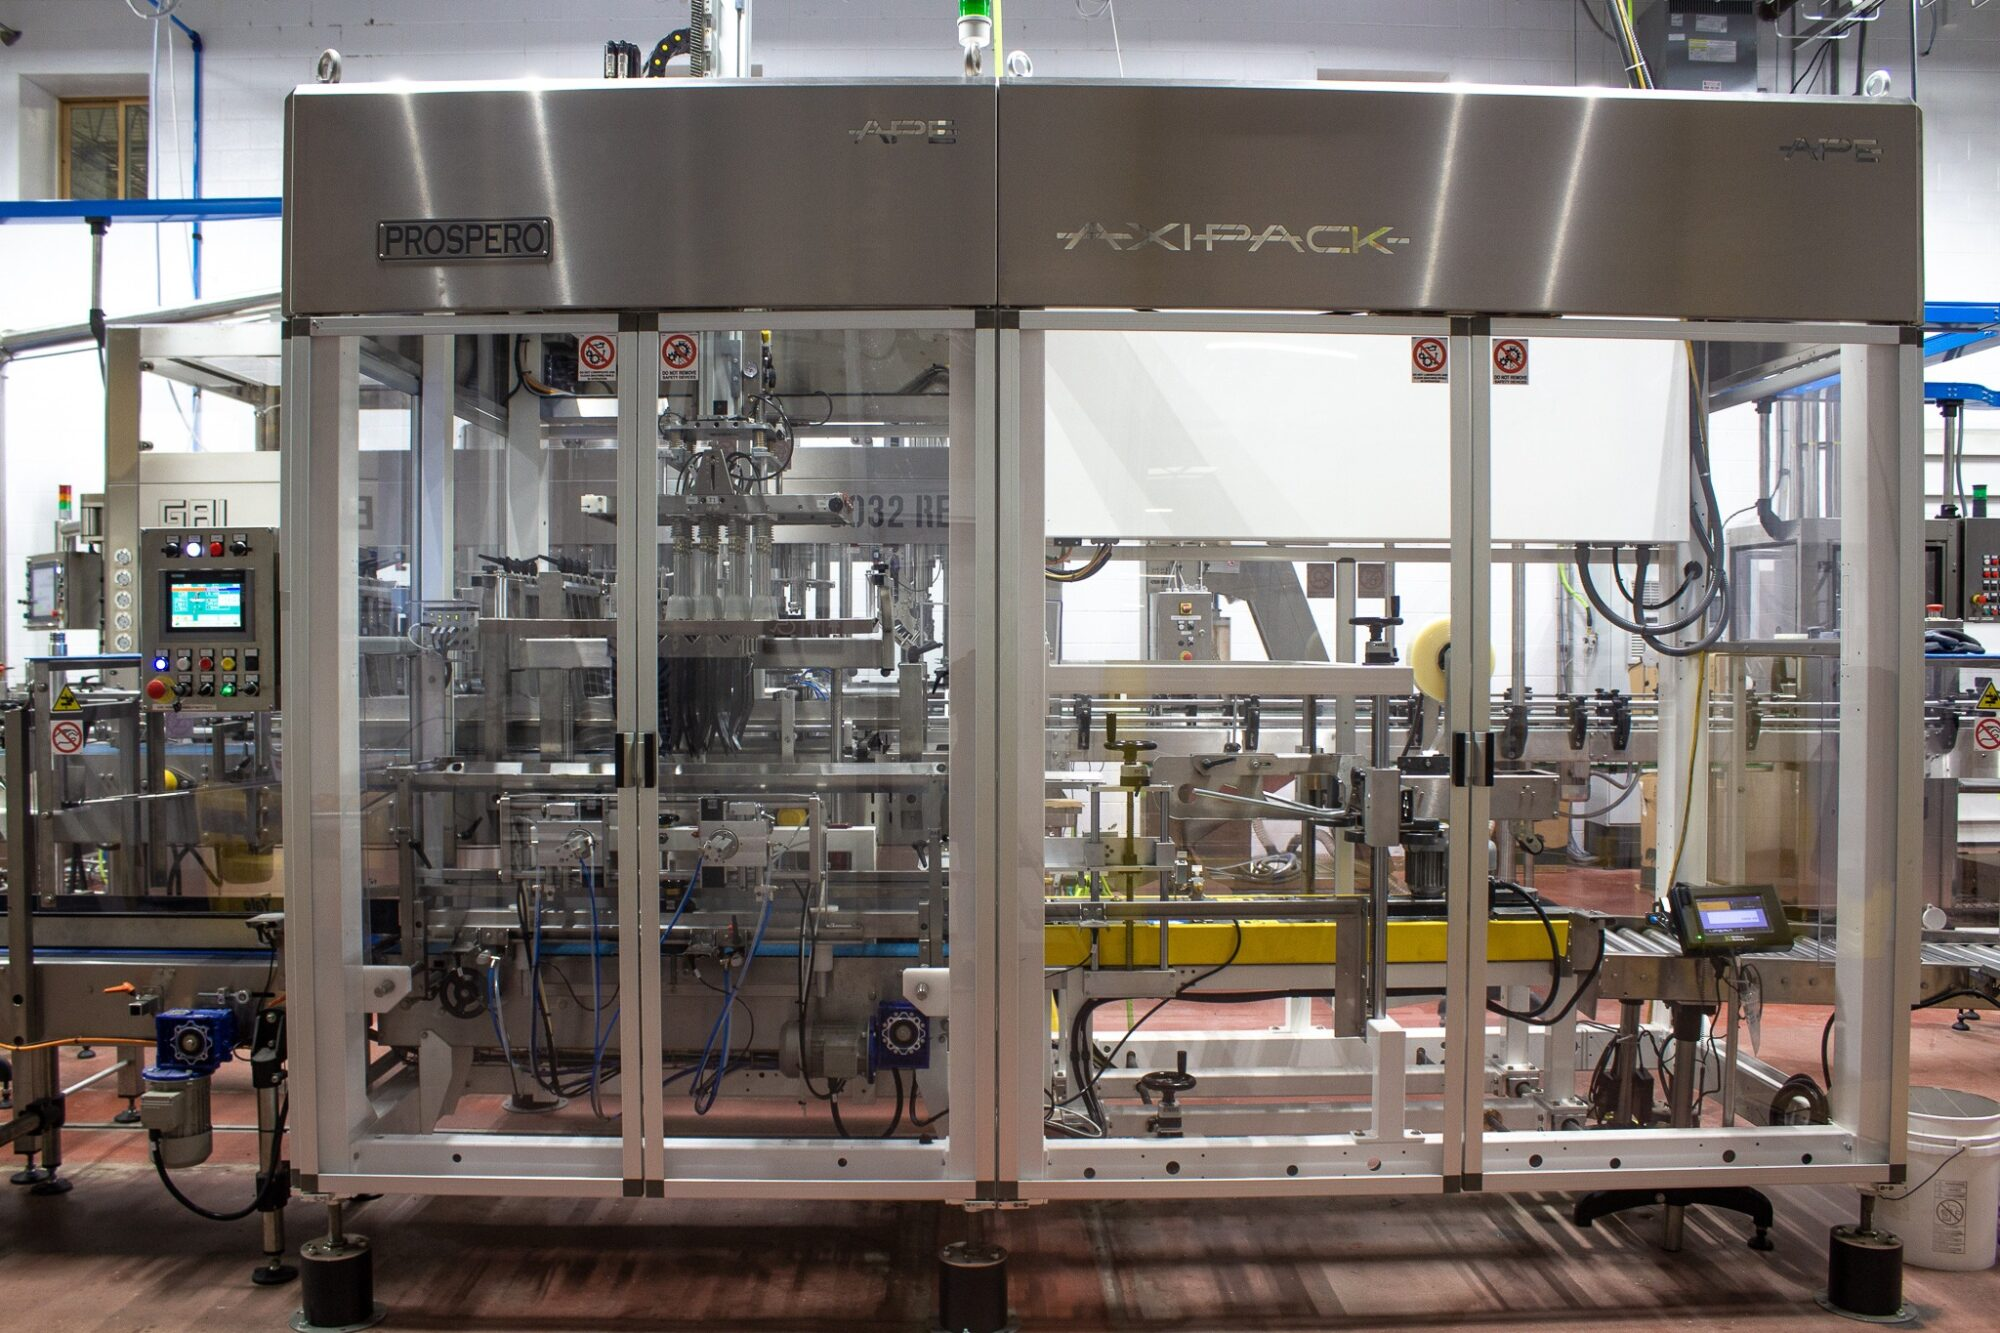 Production Line with bottling dispenser